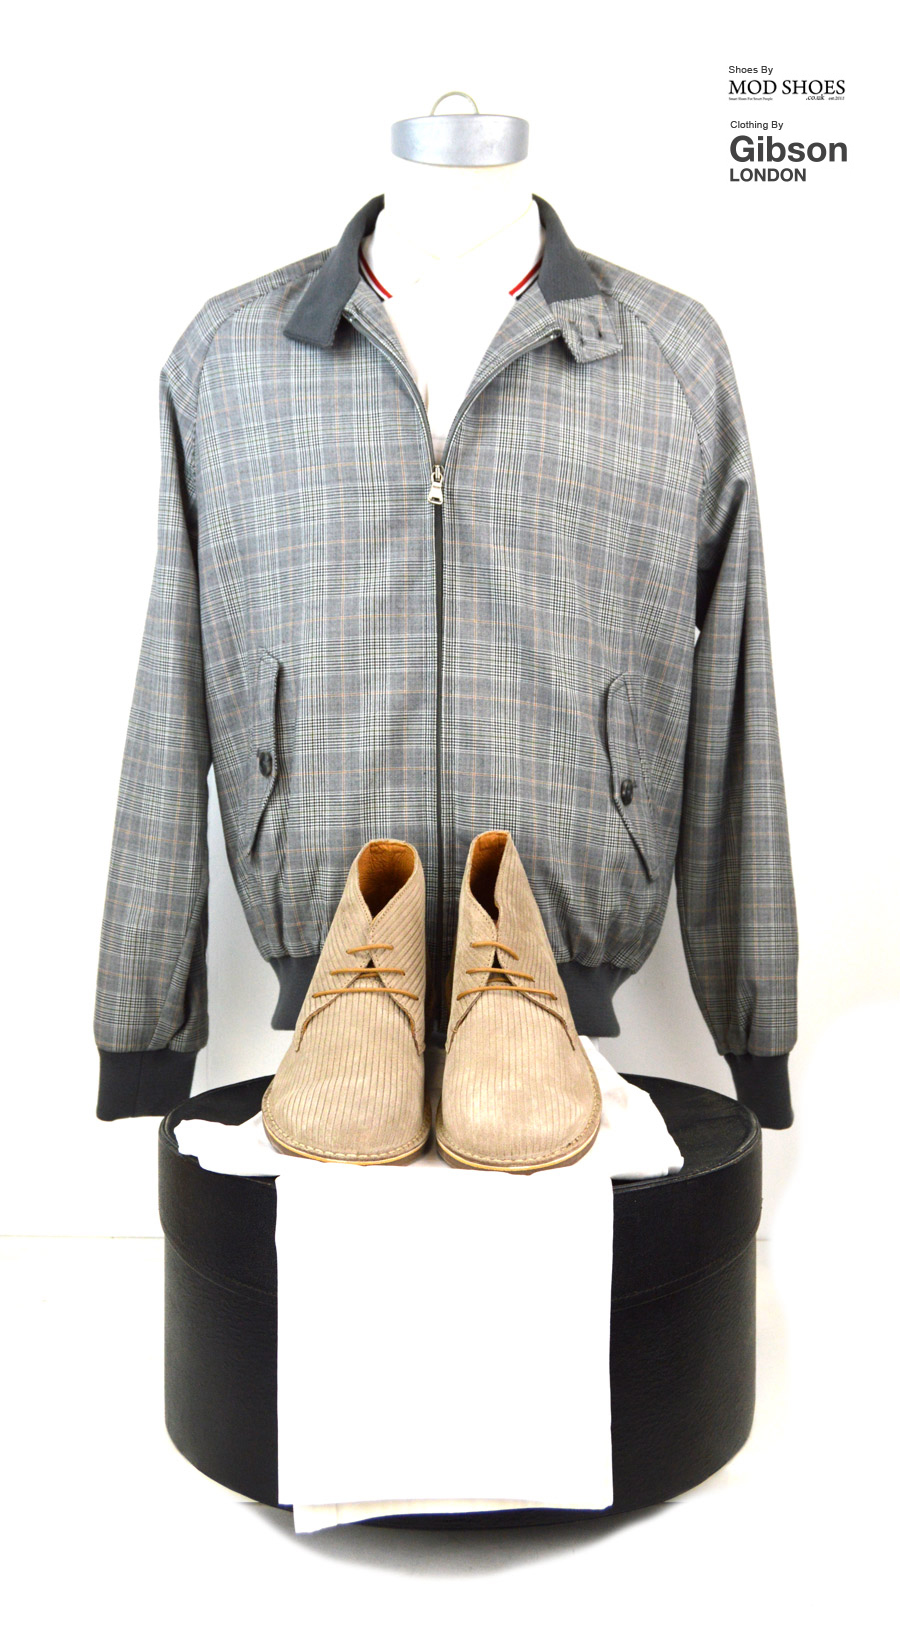 modshoes-stone-prestons-with-prince-of-wales-harrington-from-gibson-clothes